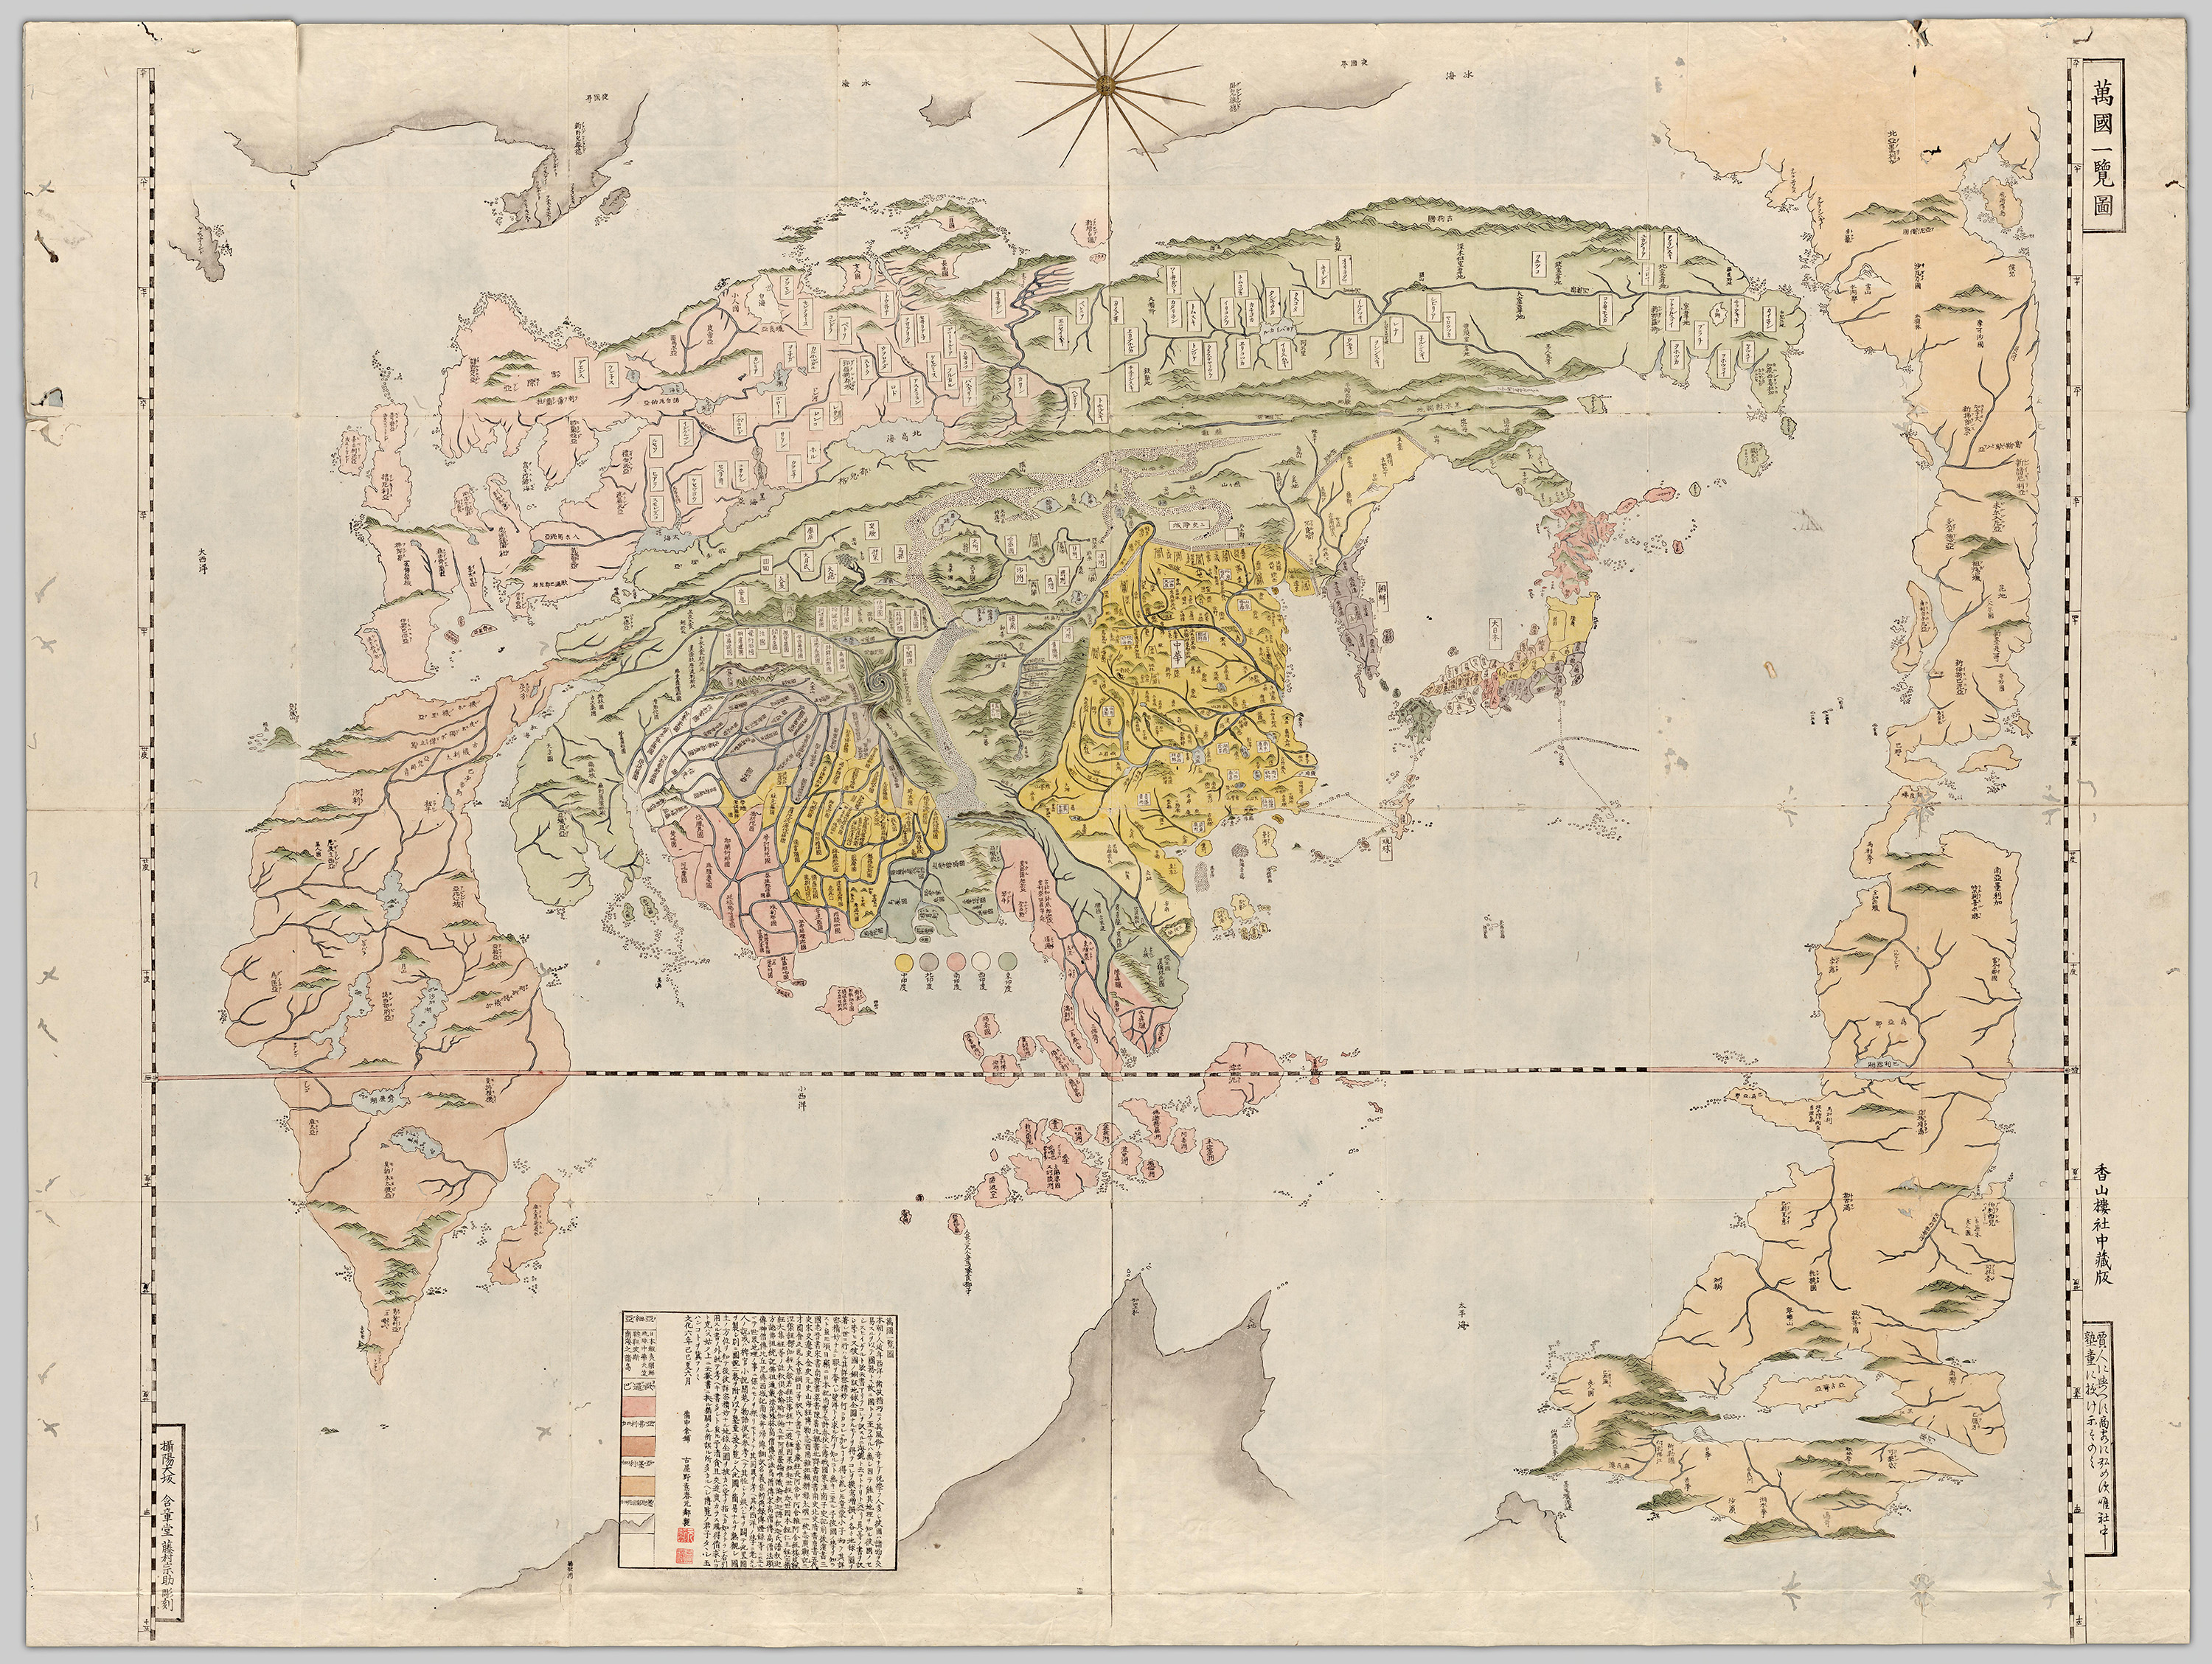 """A Japanese map of the """"world countries"""" (Europe, Asia, and Africa). Japan is on the right side of the map, and is distorted to look larger."""